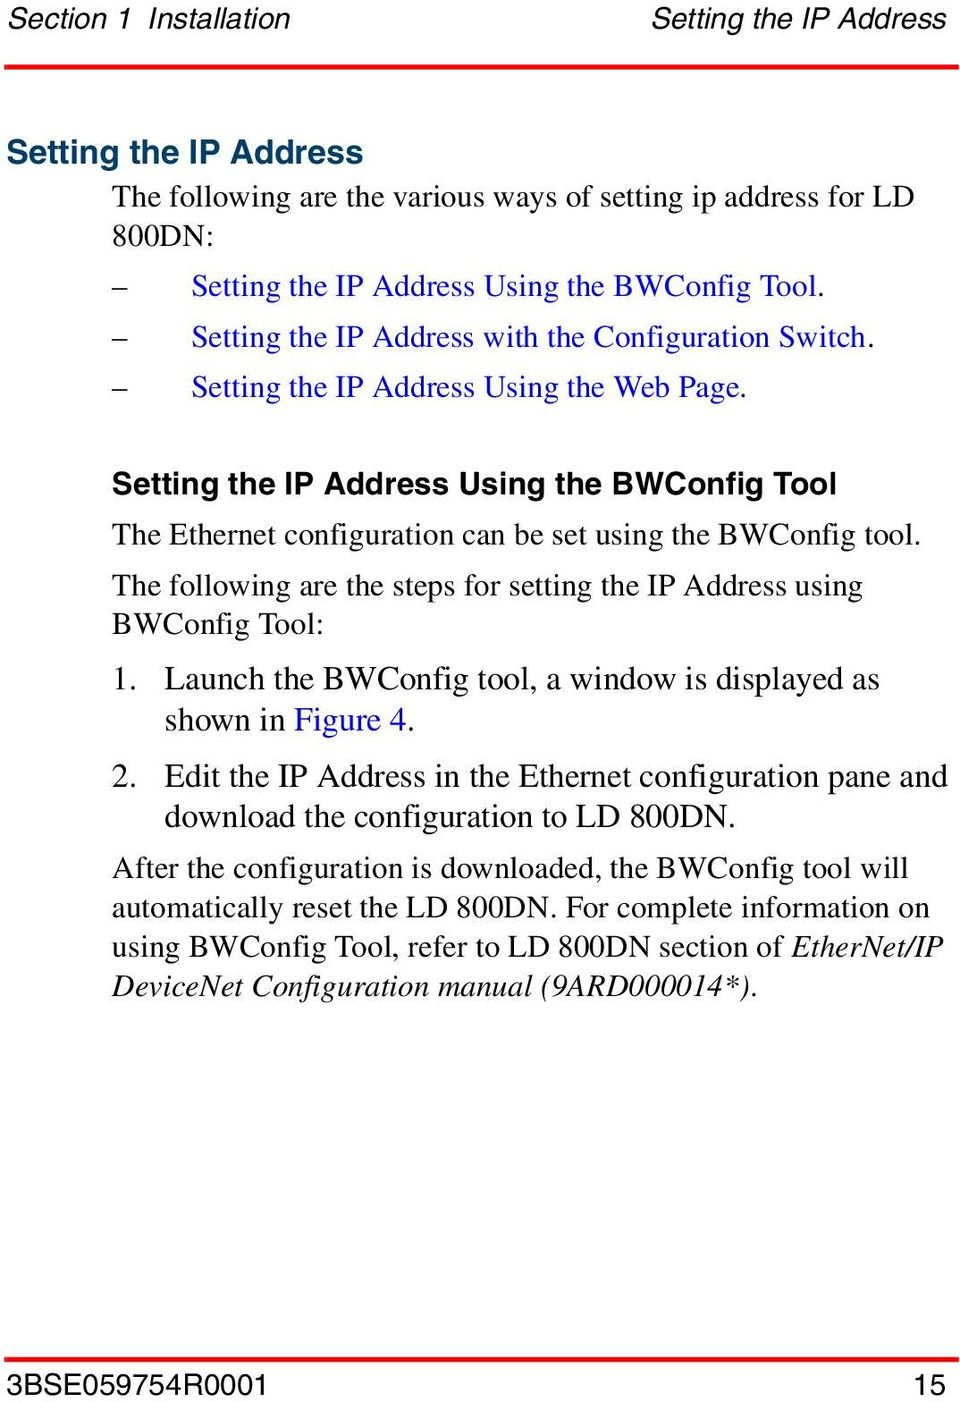 Setting the IP Address Using the BWConfig Tool The Ethernet configuration can be set using the BWConfig tool. The following are the steps for setting the IP Address using BWConfig Tool: 1.